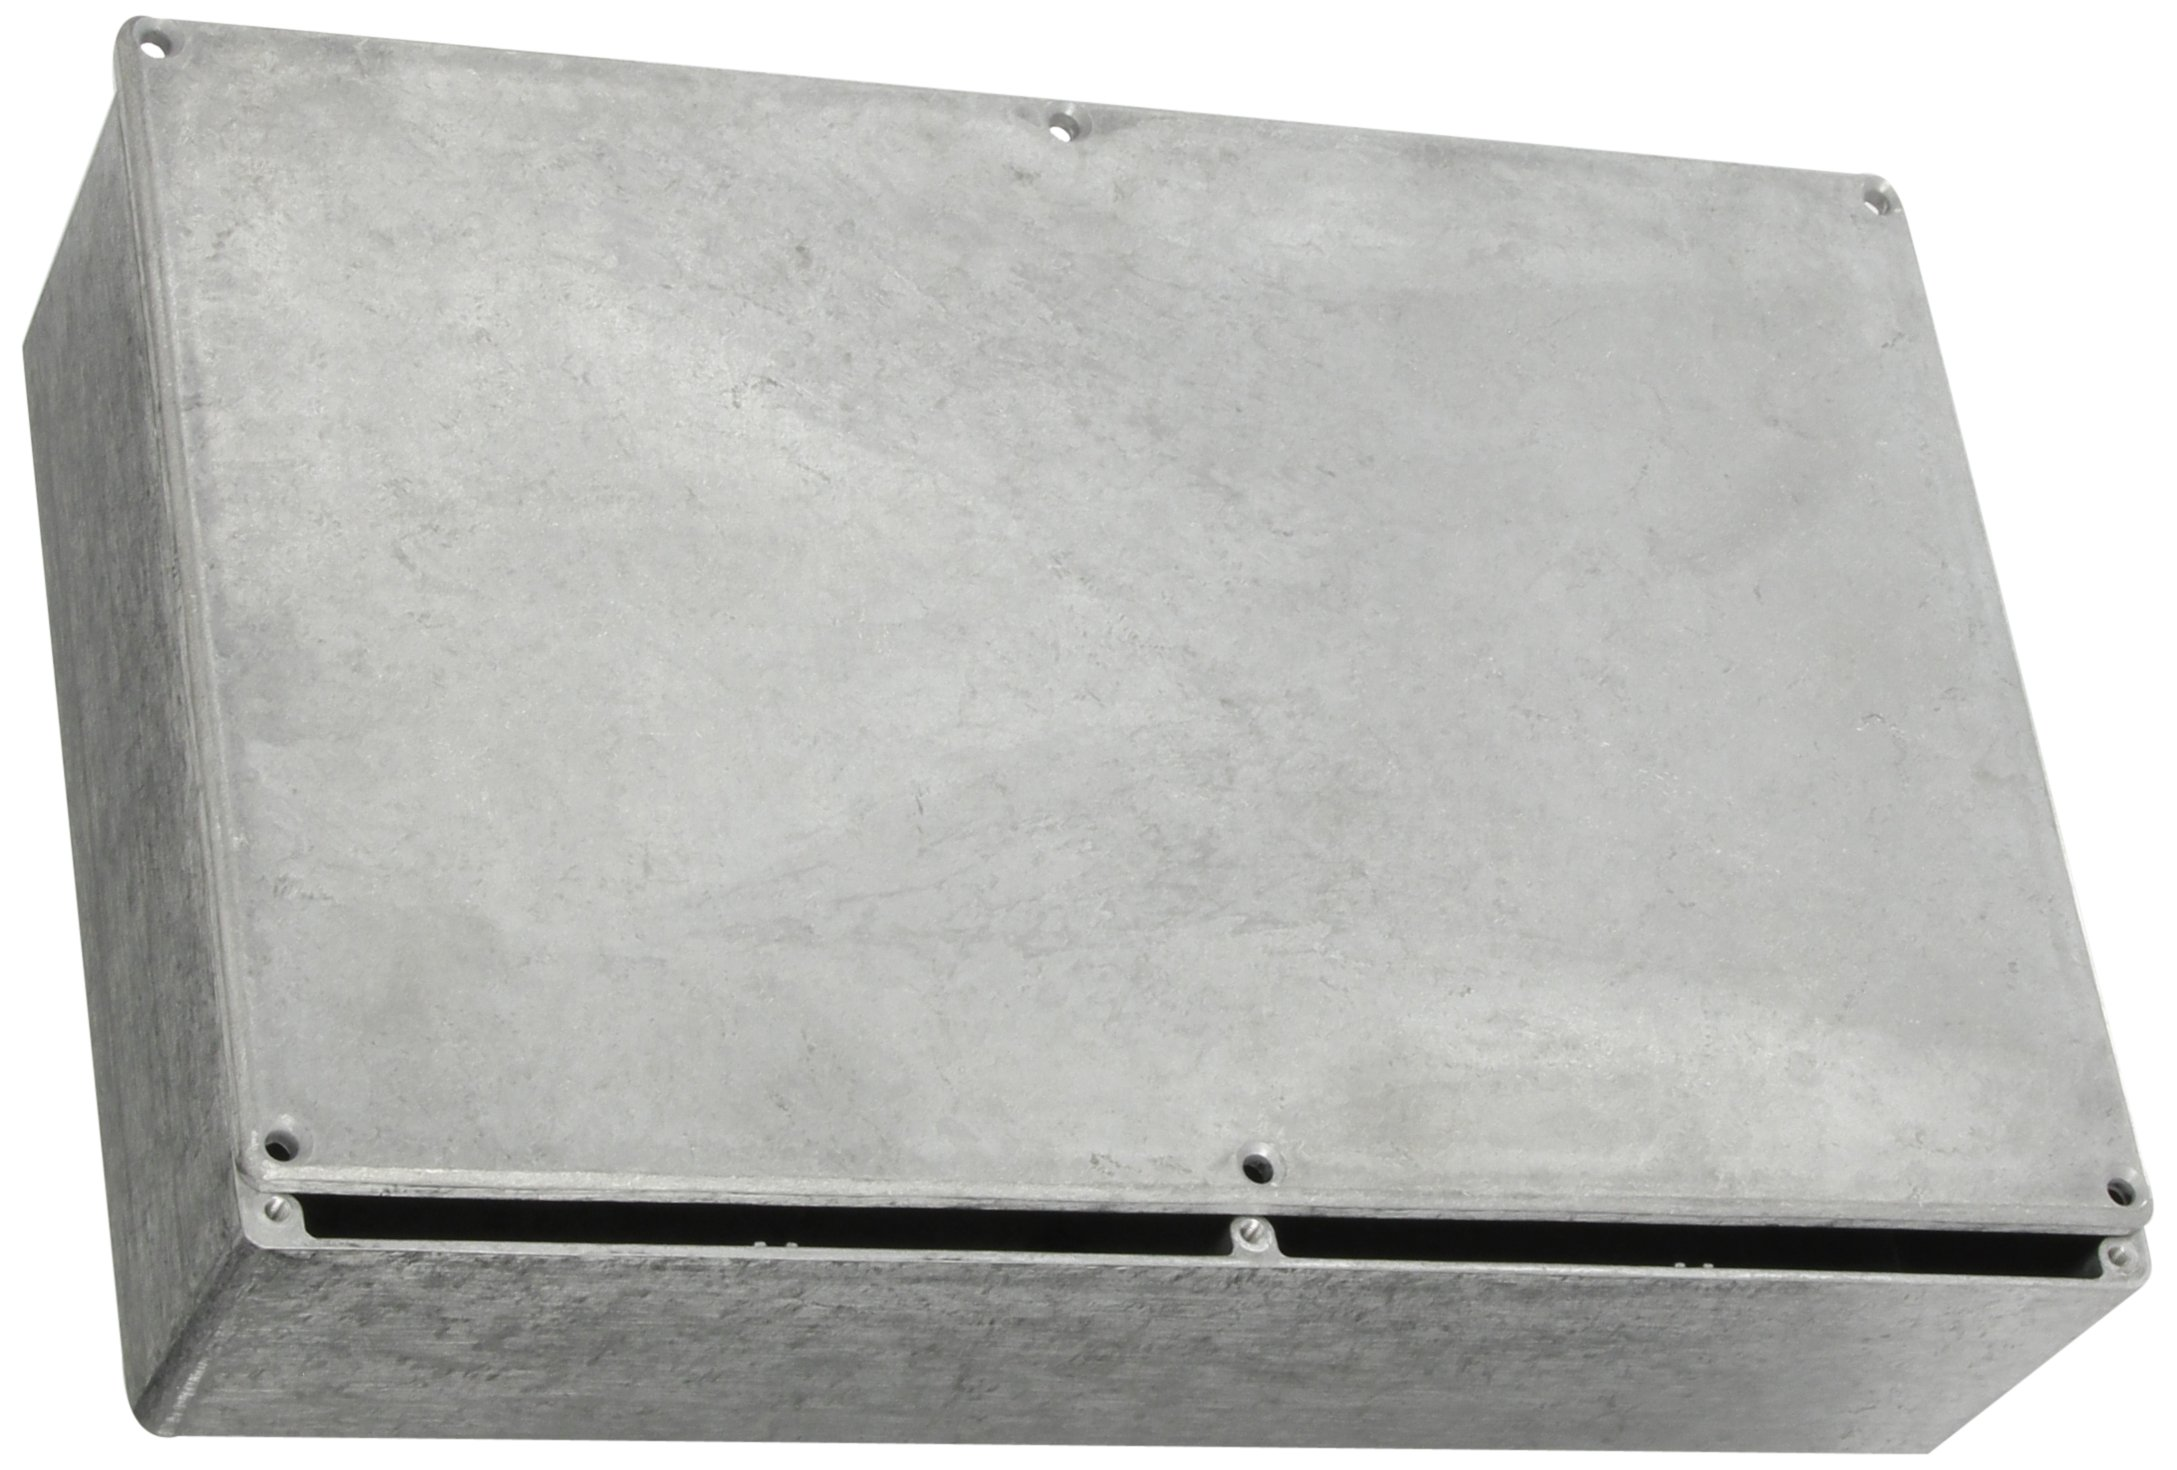 BUD Industries CN-5714 Die Cast Aluminum Enclosure, 10-51/64'' Length x 6-7/8'' Width x 2-5/8'' Height, Natural Finish